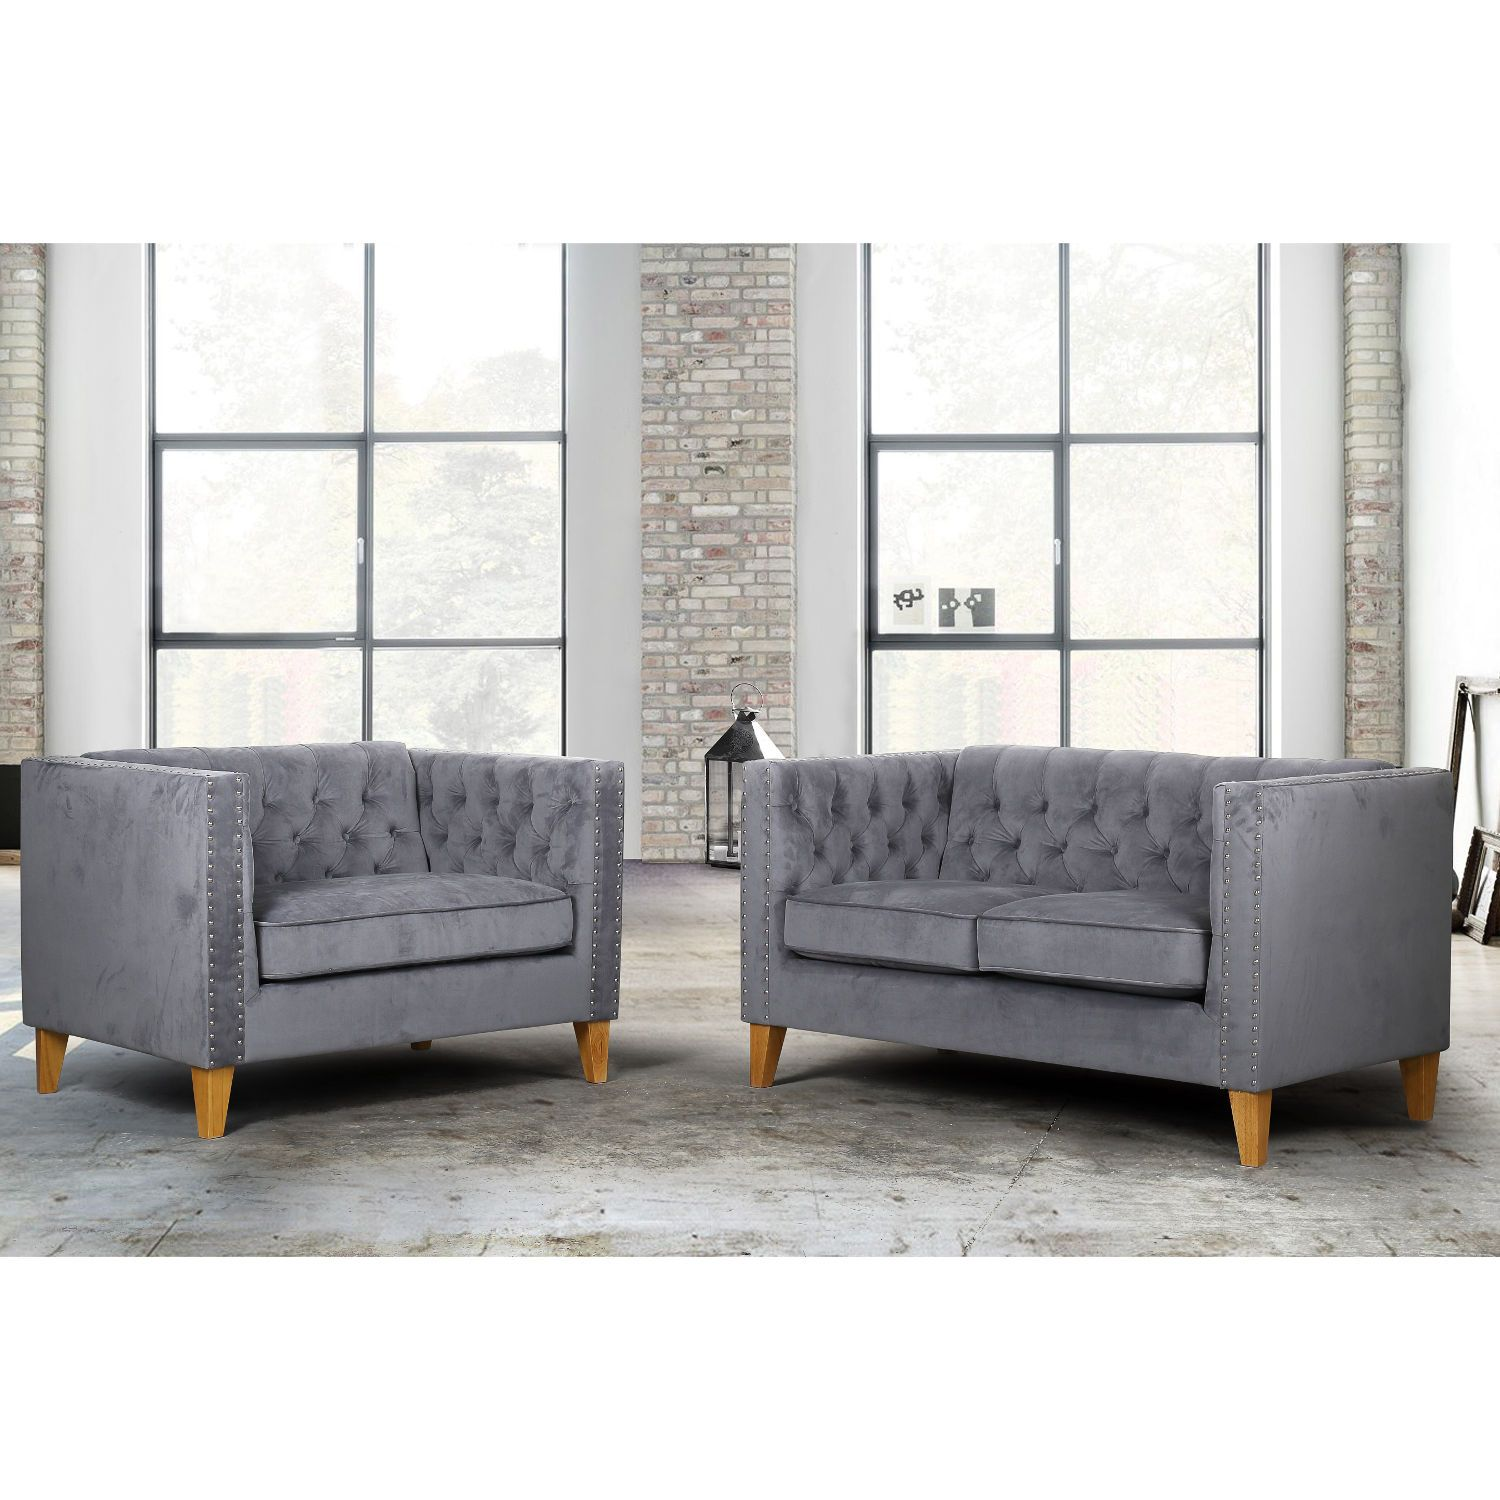 Florence Velvet 2 Seater Sofa – Next Day Delivery Florence Velvet 2